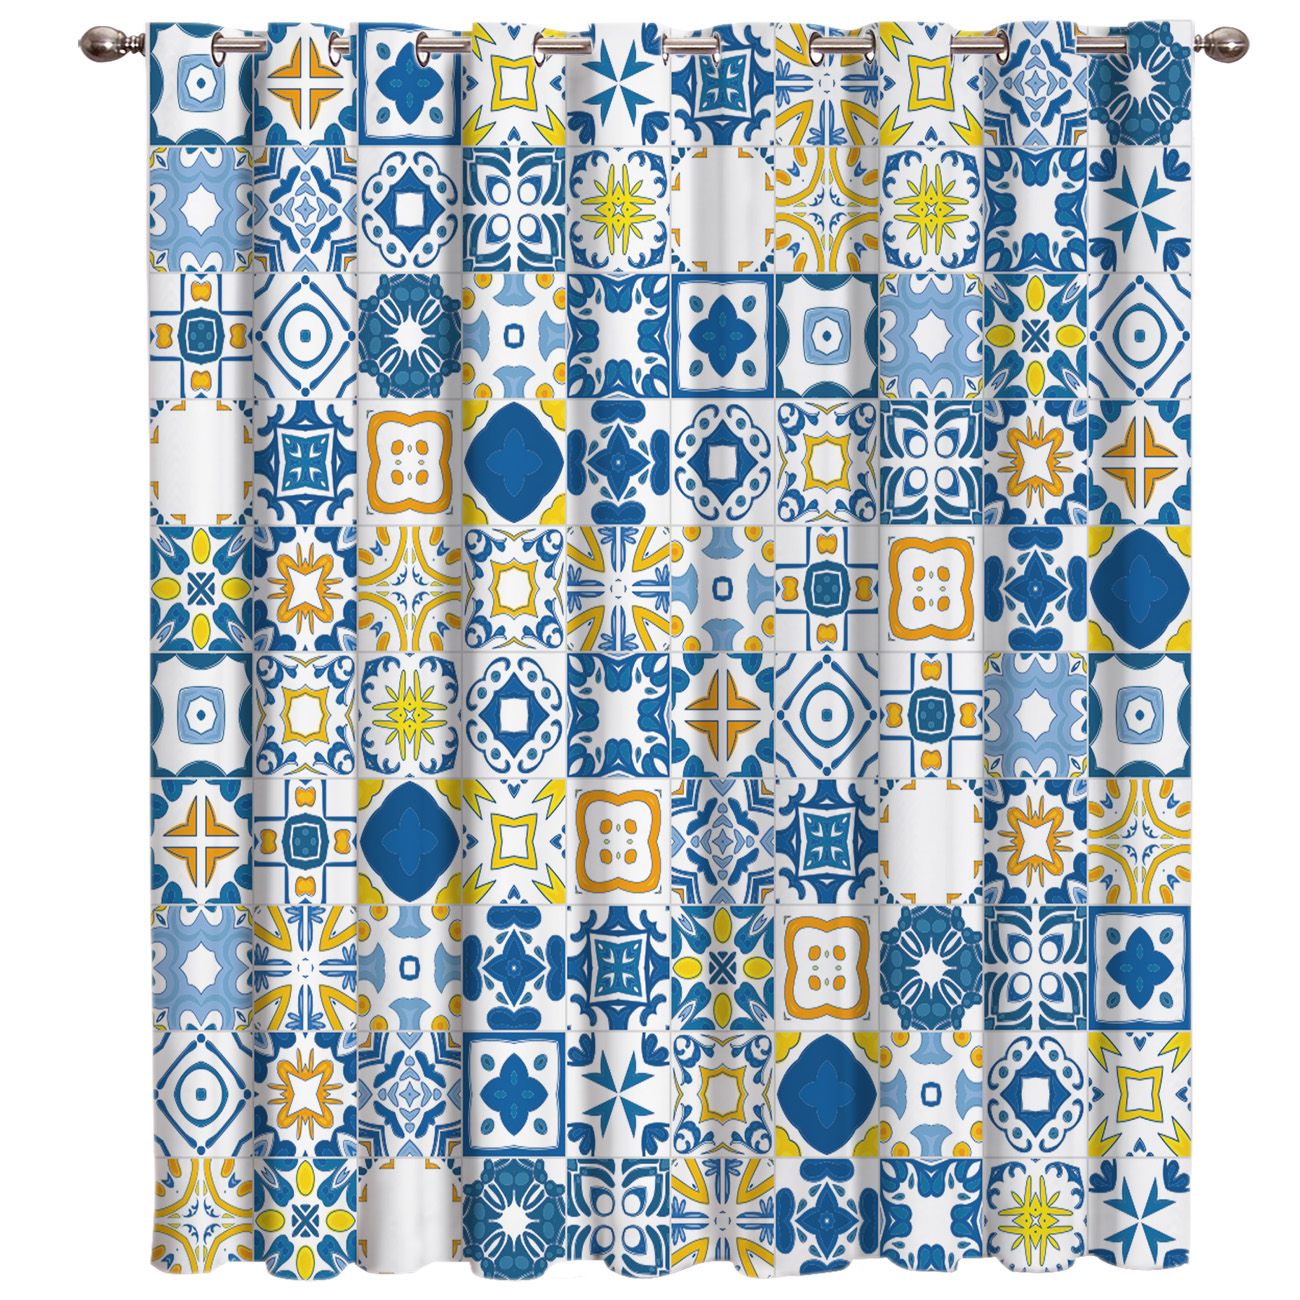 Blue Carved Pattern Mosaic Window Treatments Curtains Valance Bedroom Outdoor Fabric Indoor Kids Outdoor Curtains